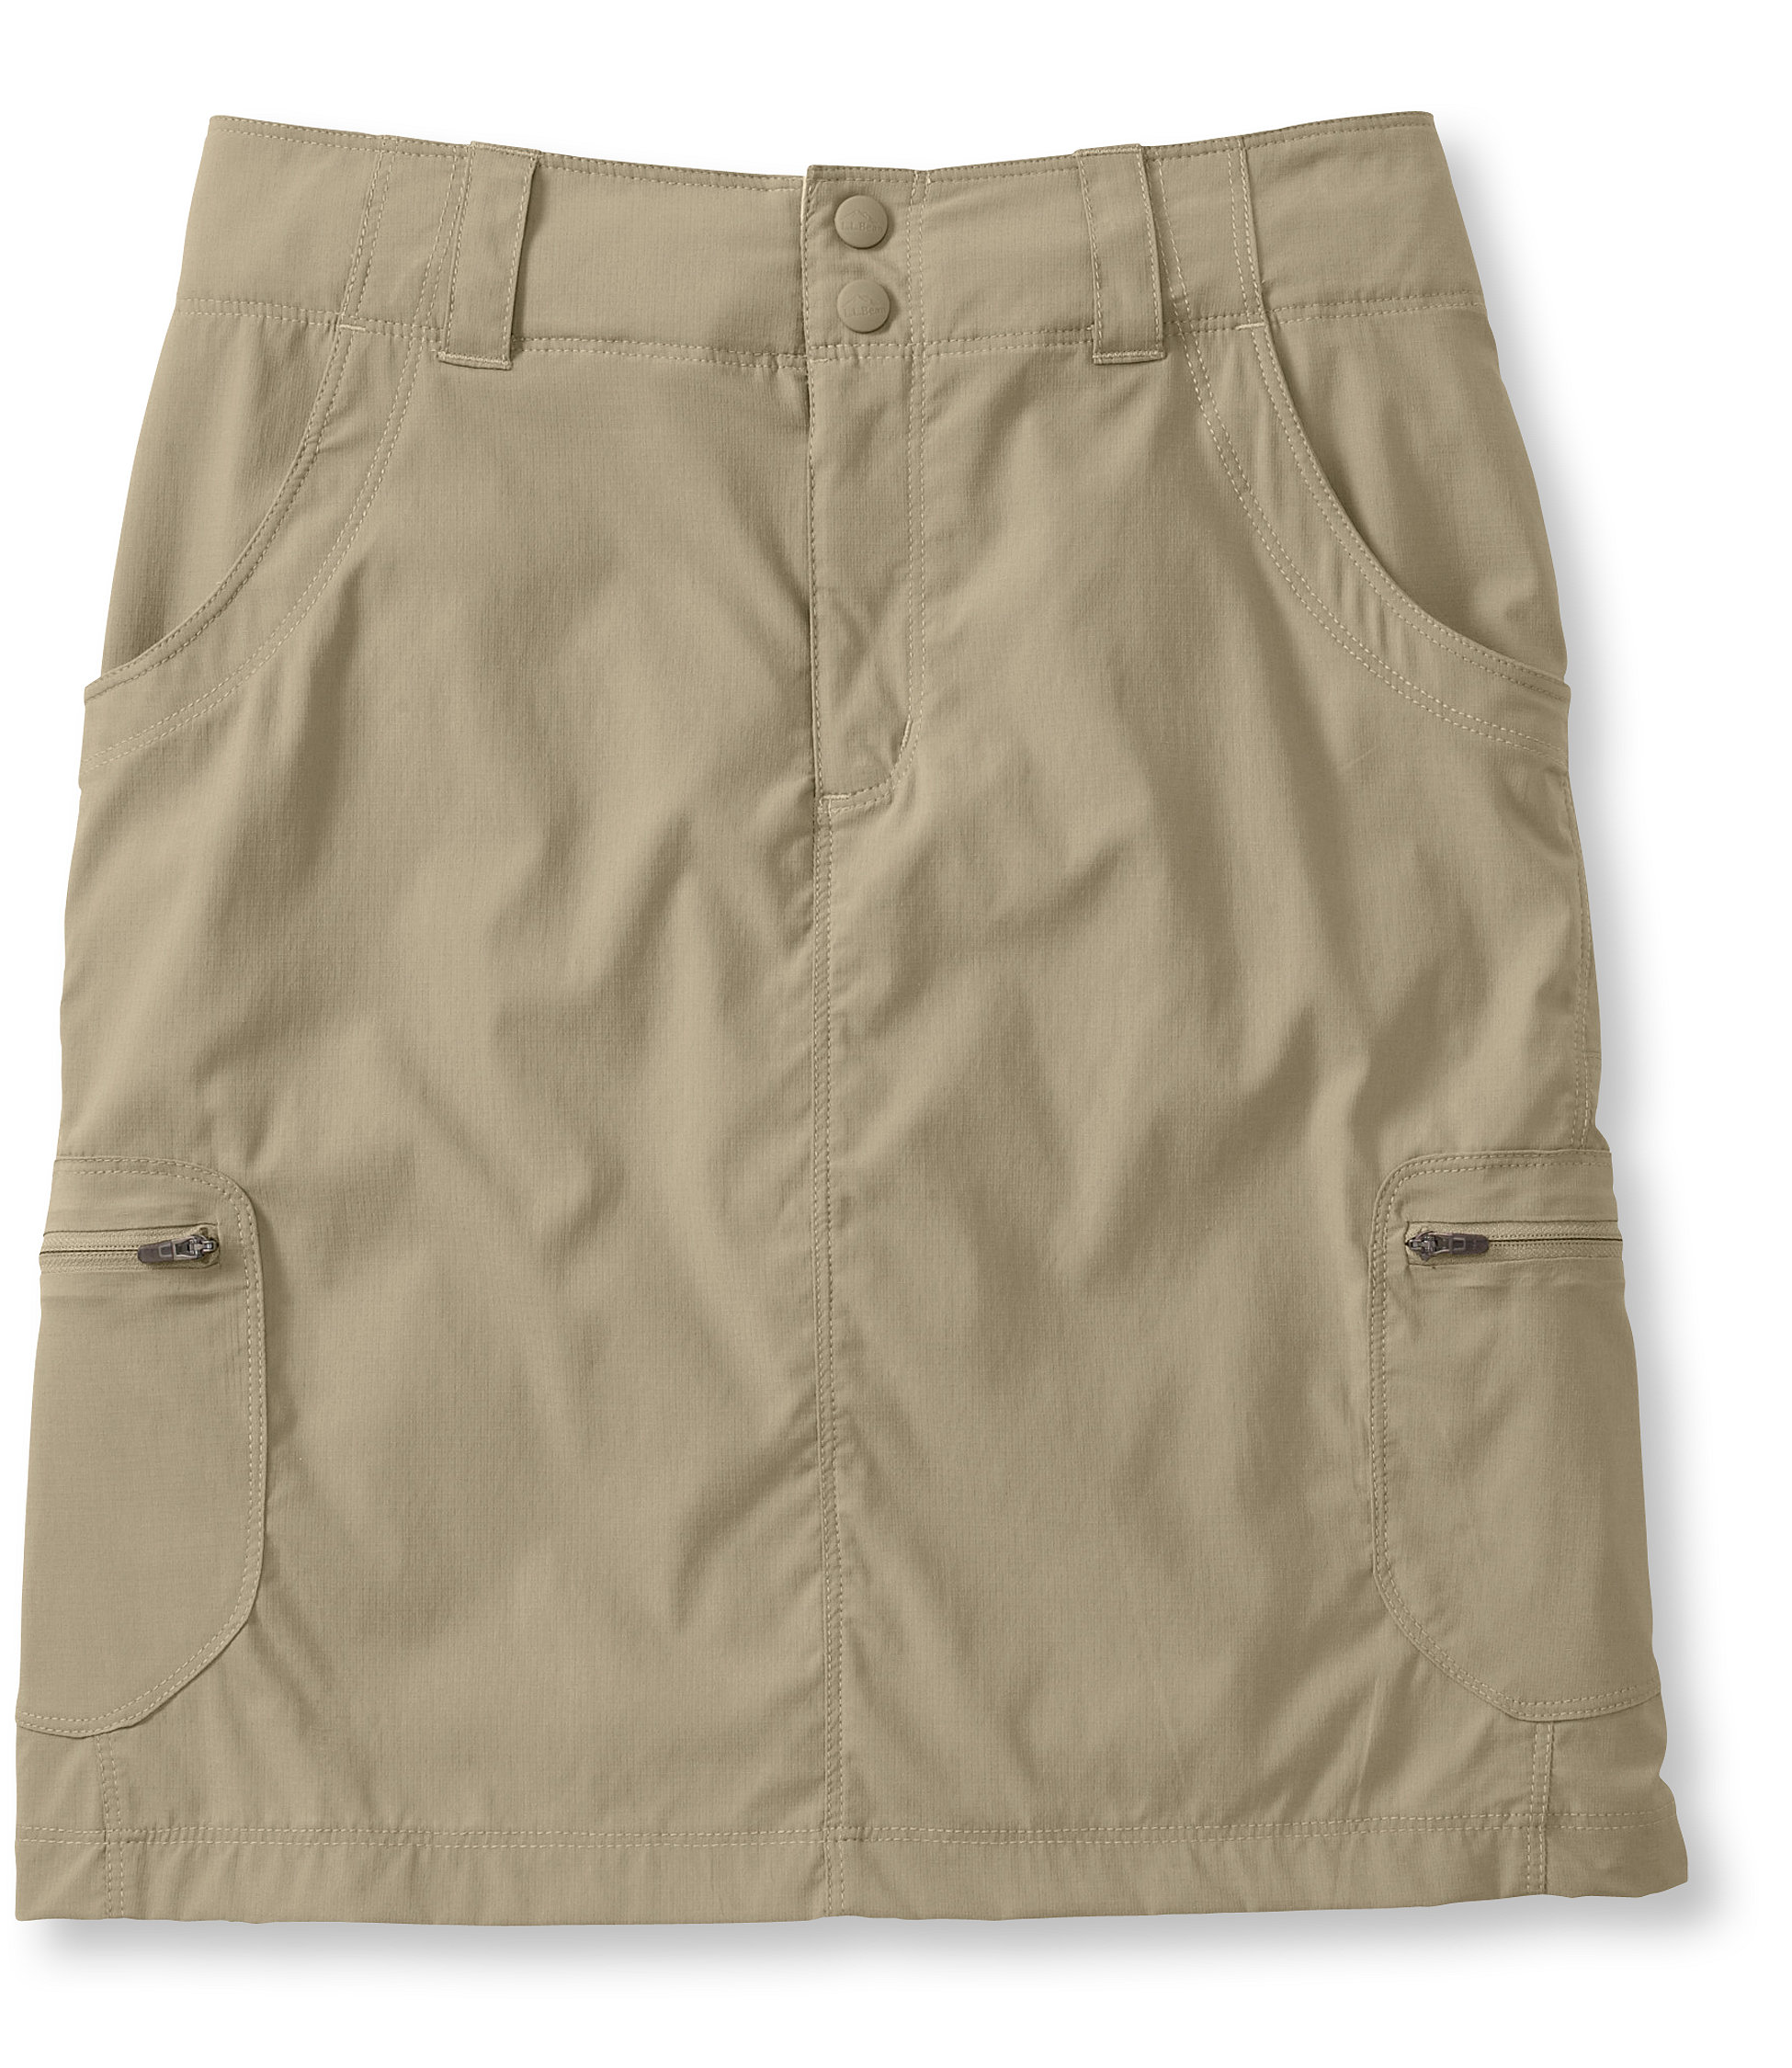 L.L.Bean Vista Trekking Skirt